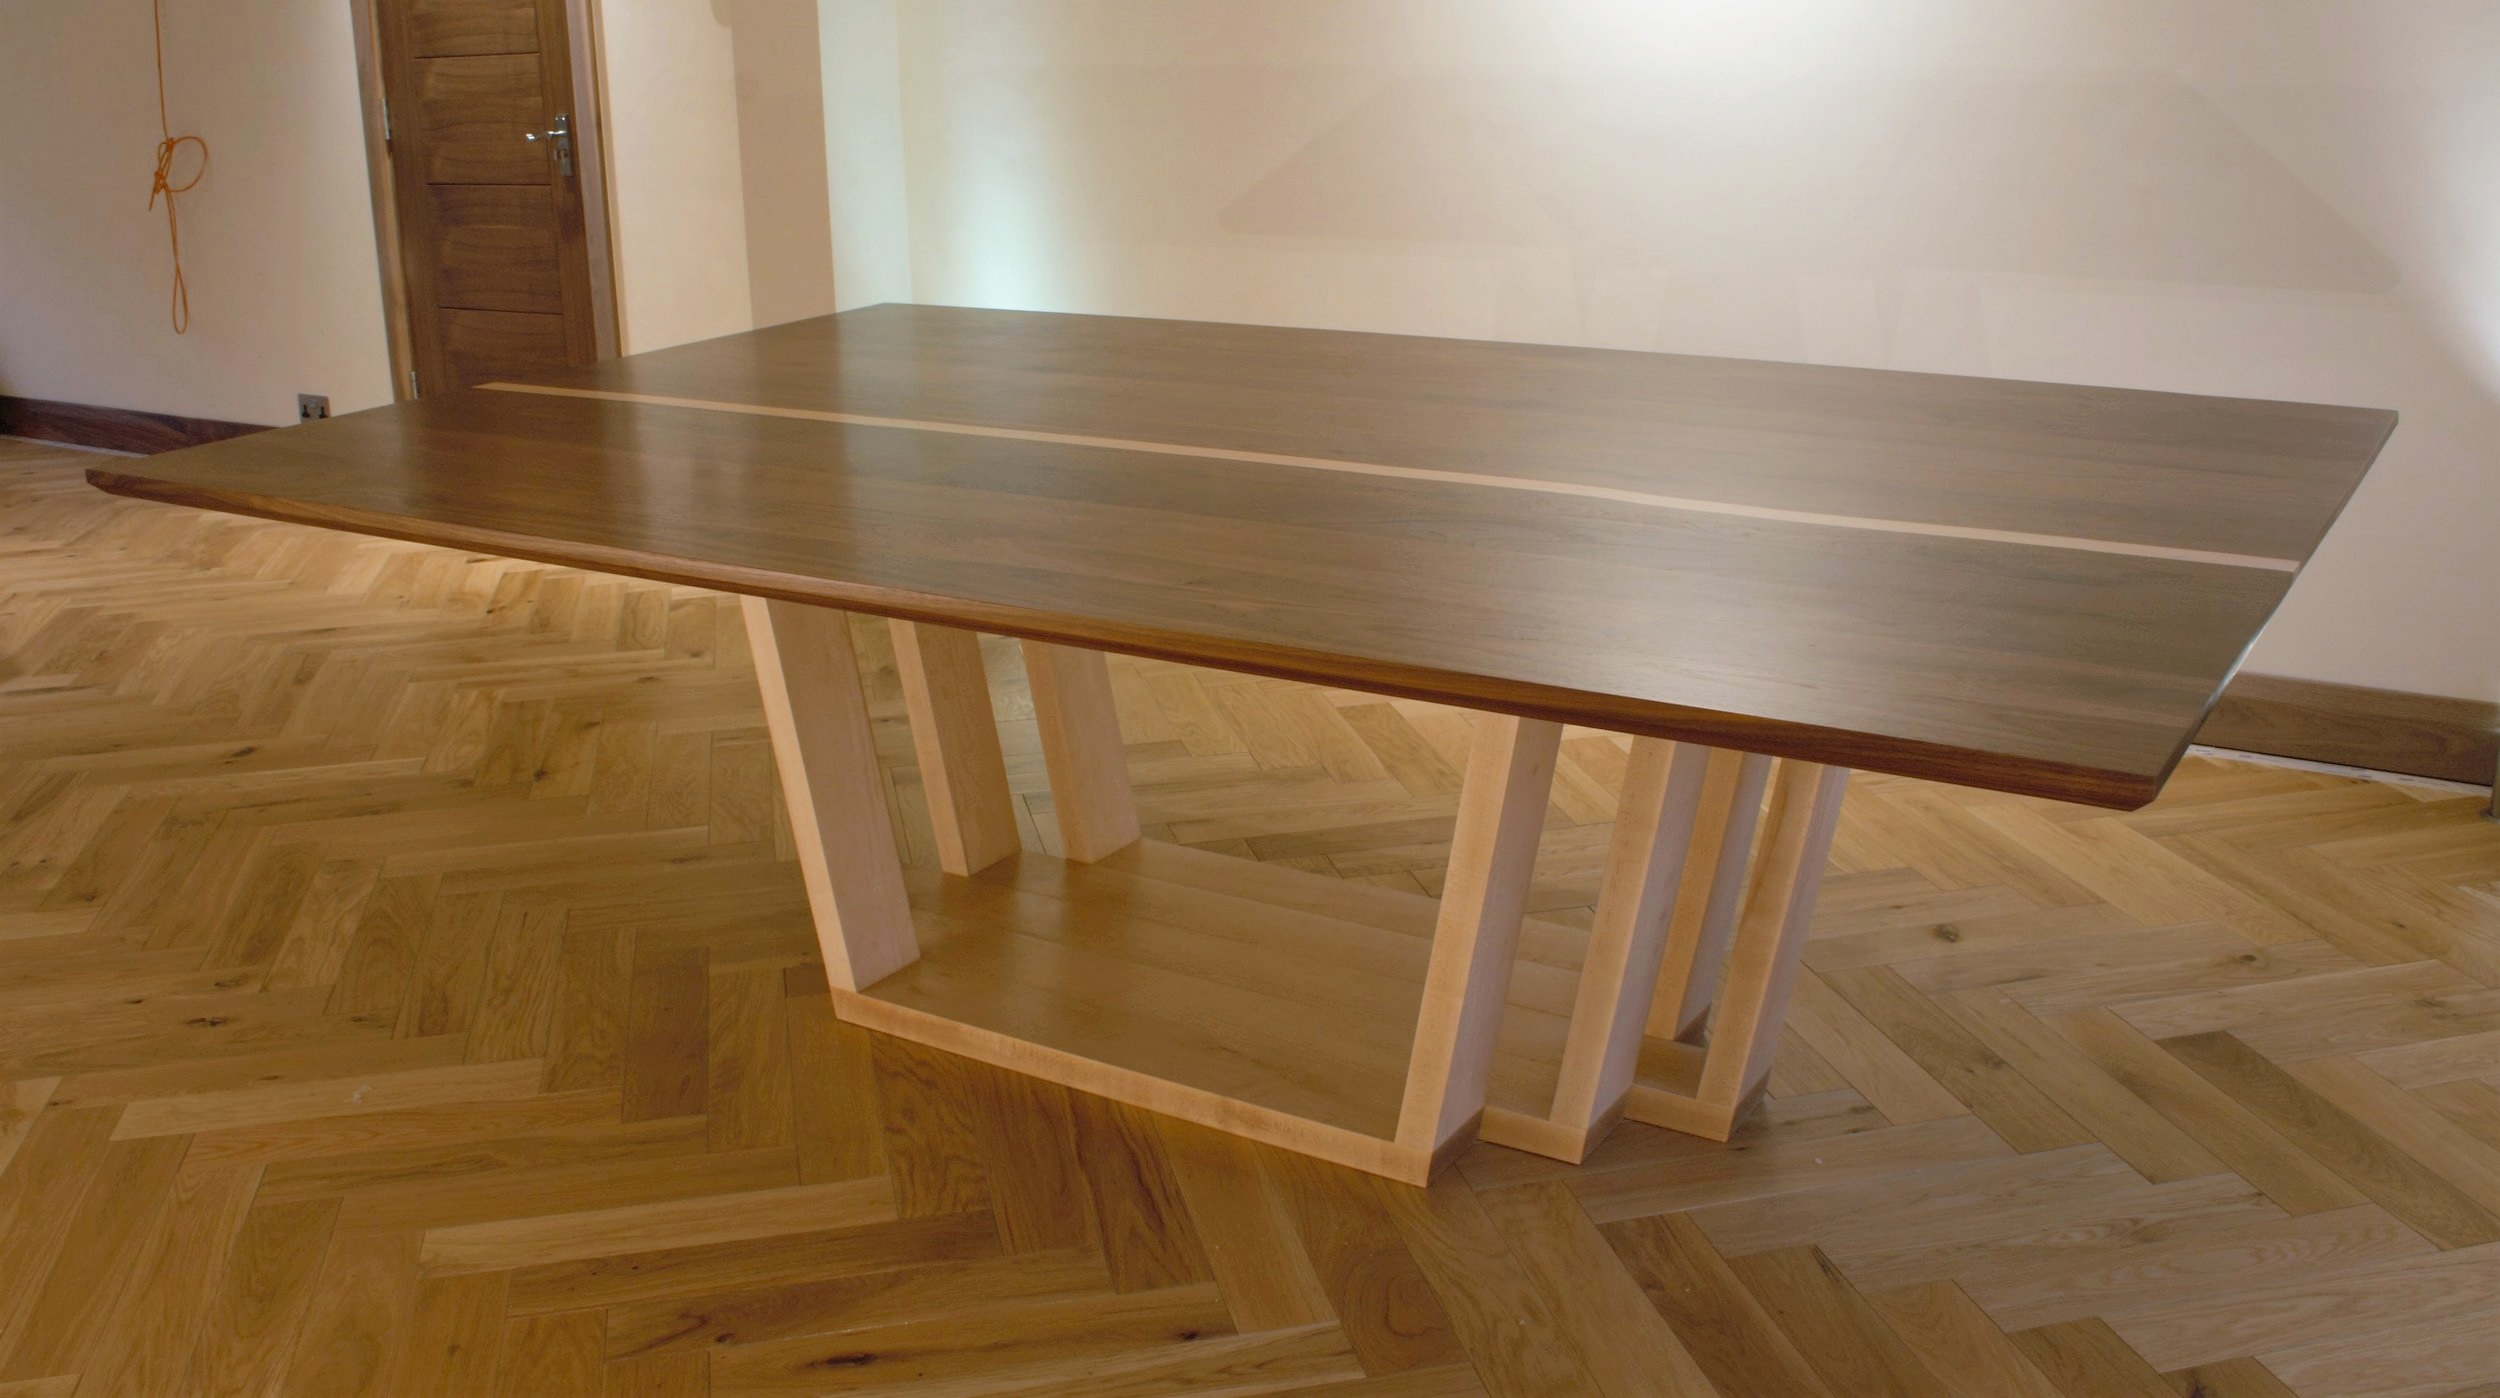 Heliconia_Furniturte_WalnutMaple_DiningTable_Installed (1).jpg